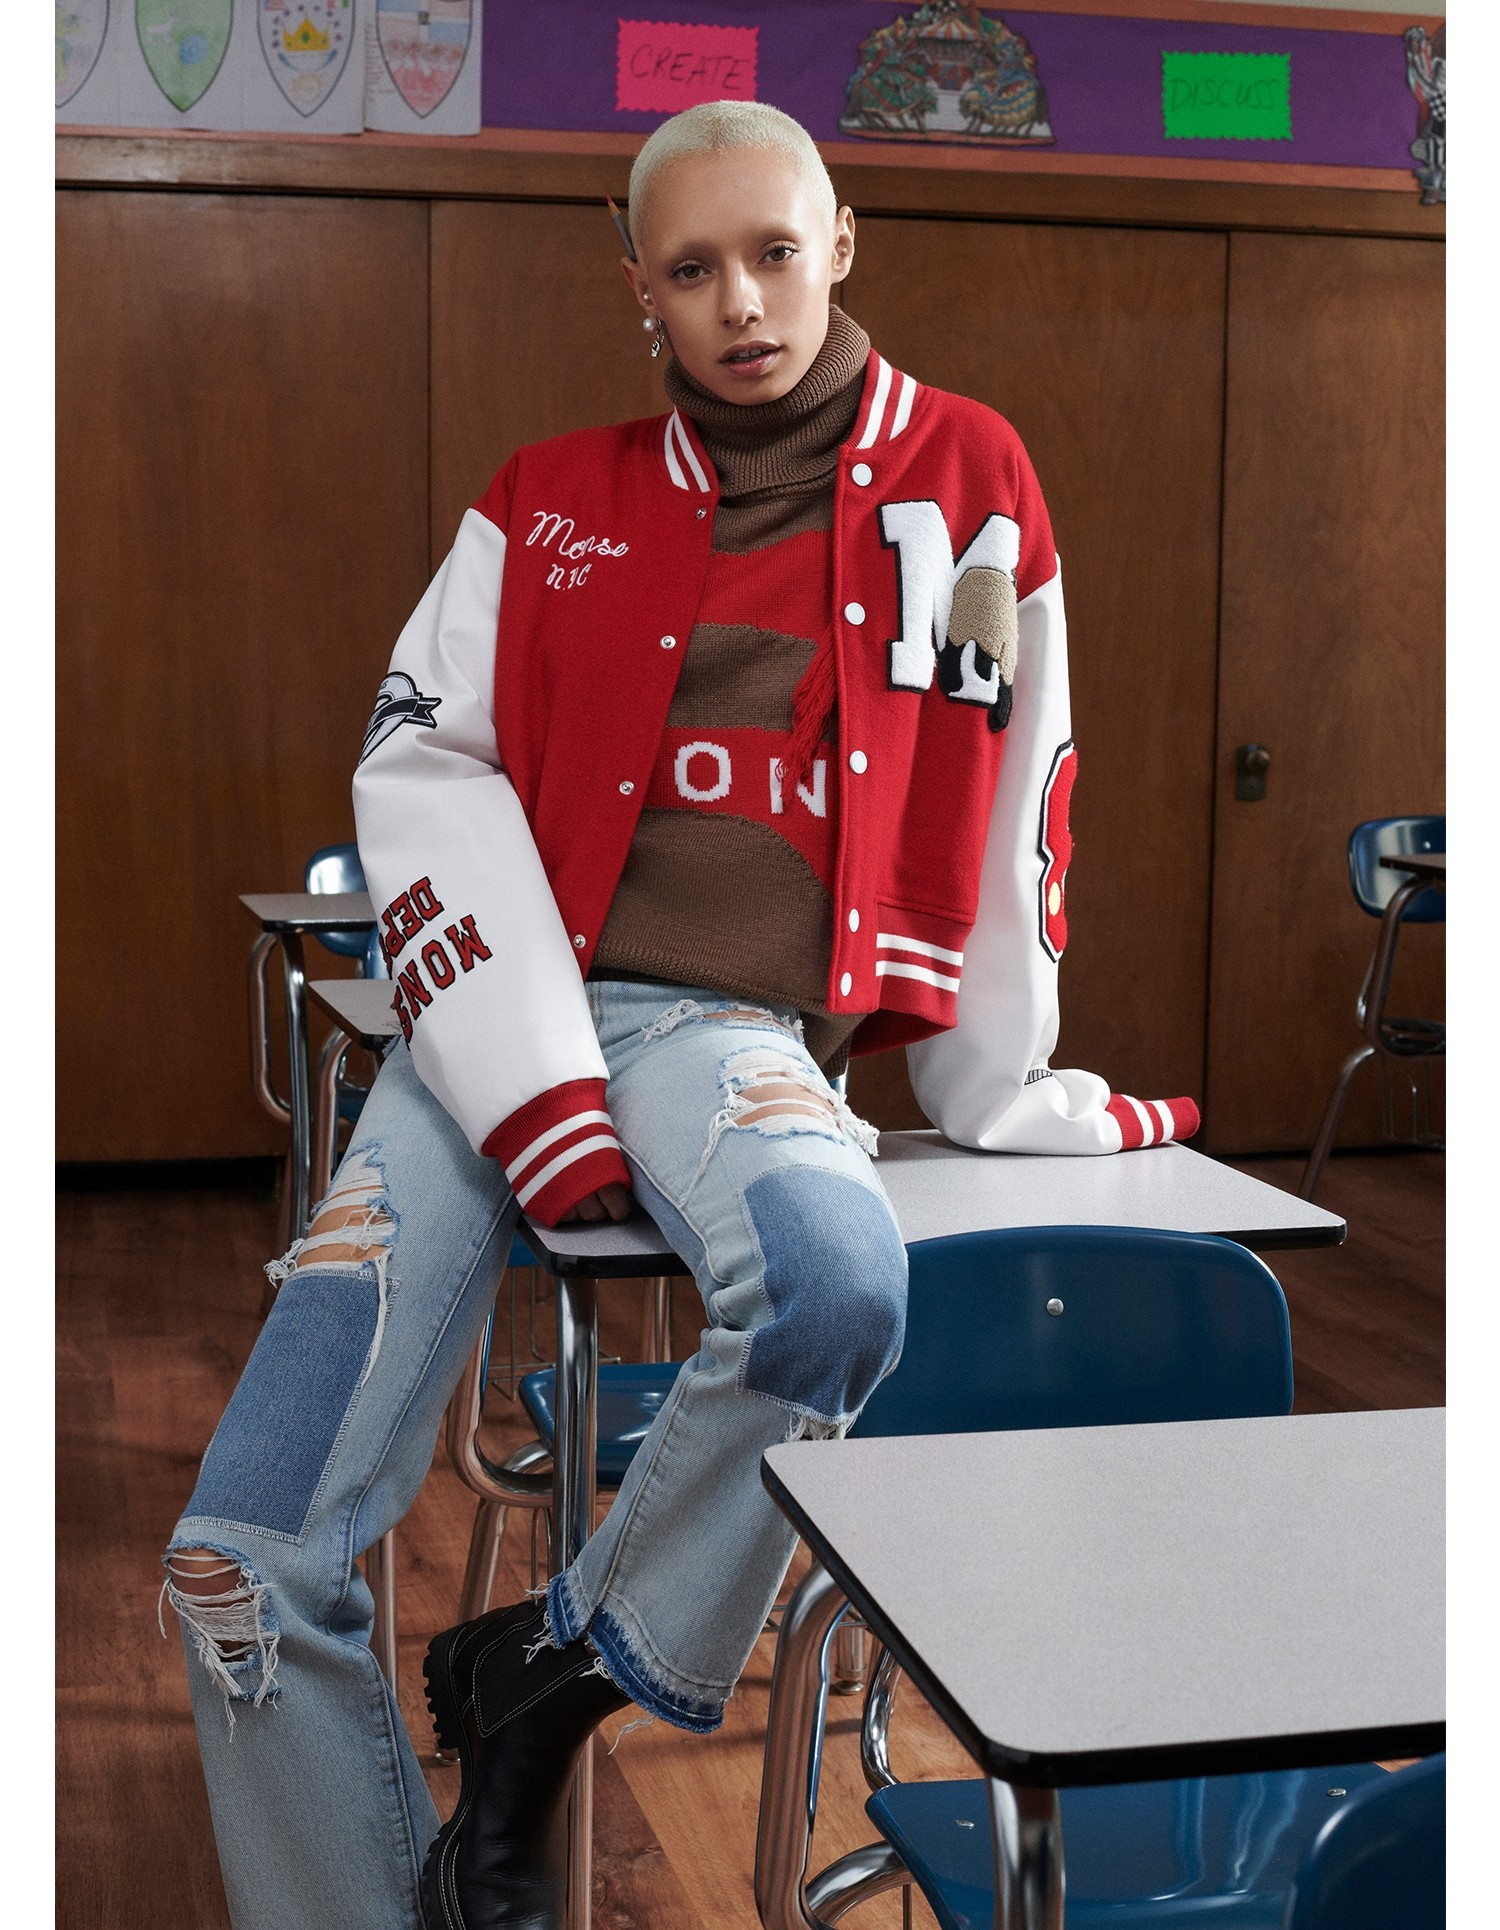 MONSE Cropped Letterman Jacket in White and Scarlet on Model Main Front View